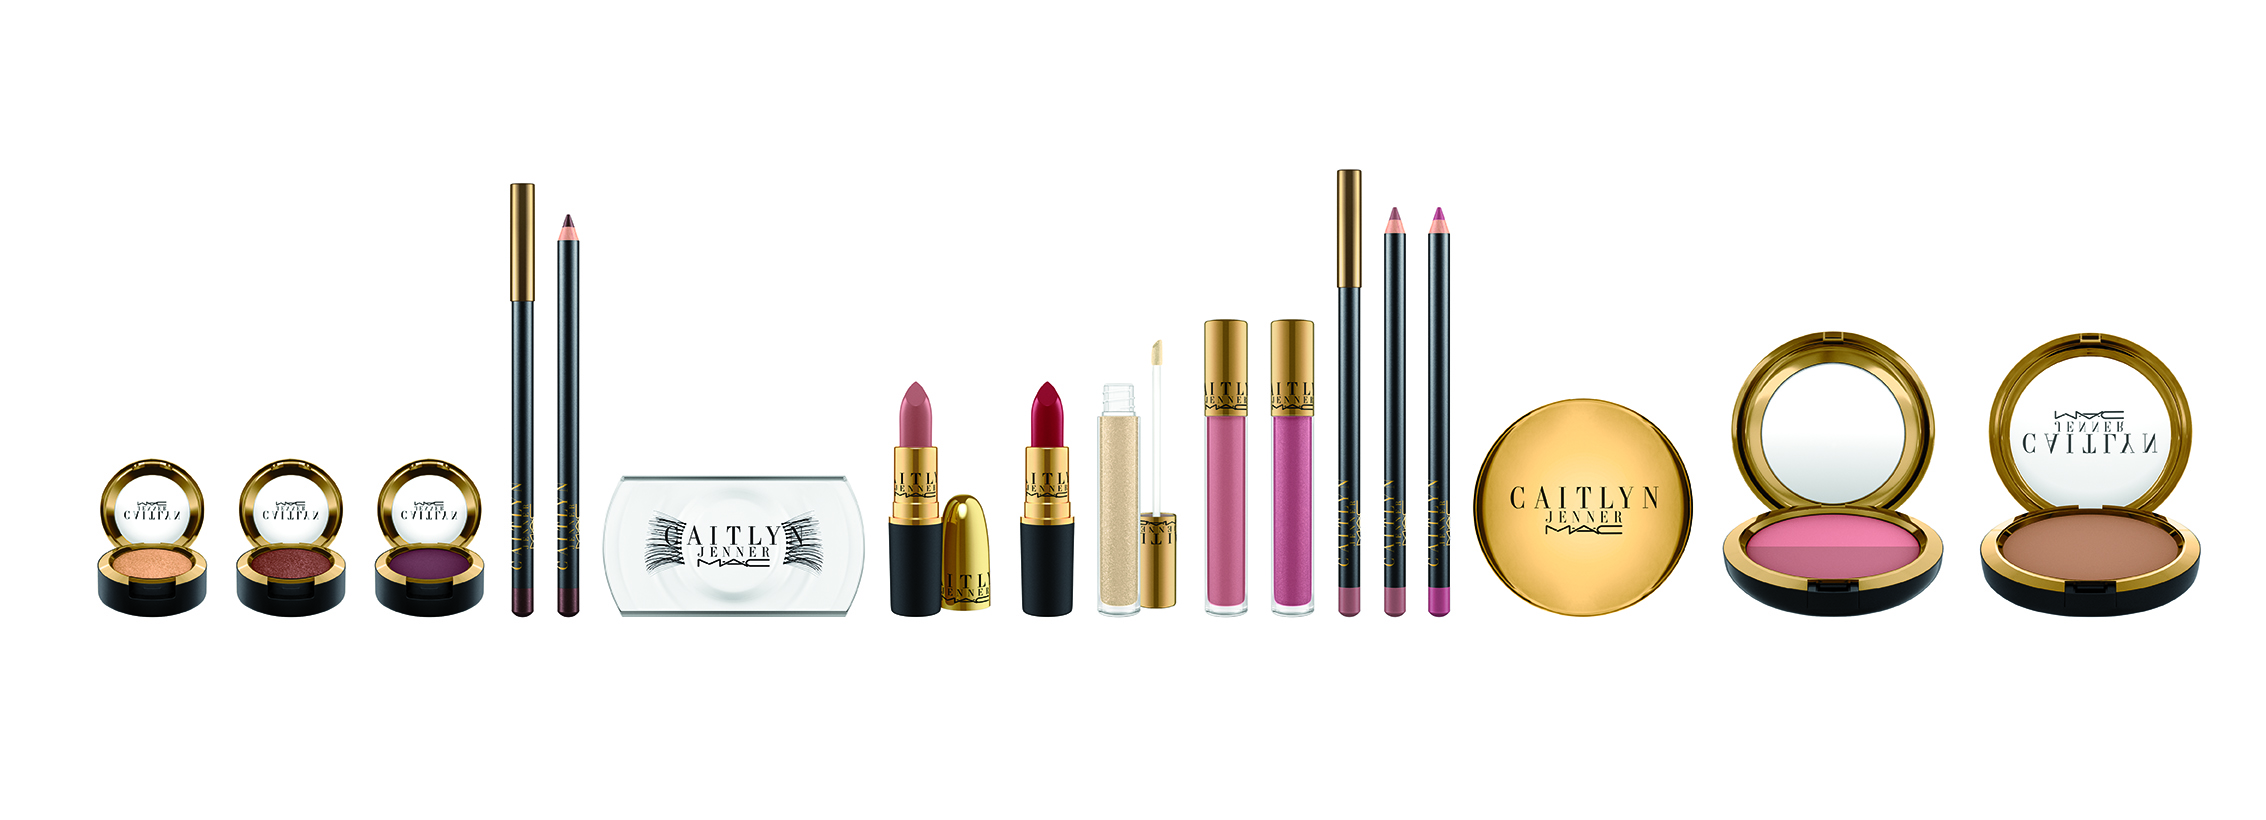 Mac Cosmetics Releases A Caitlyn Jenner Makeup Line